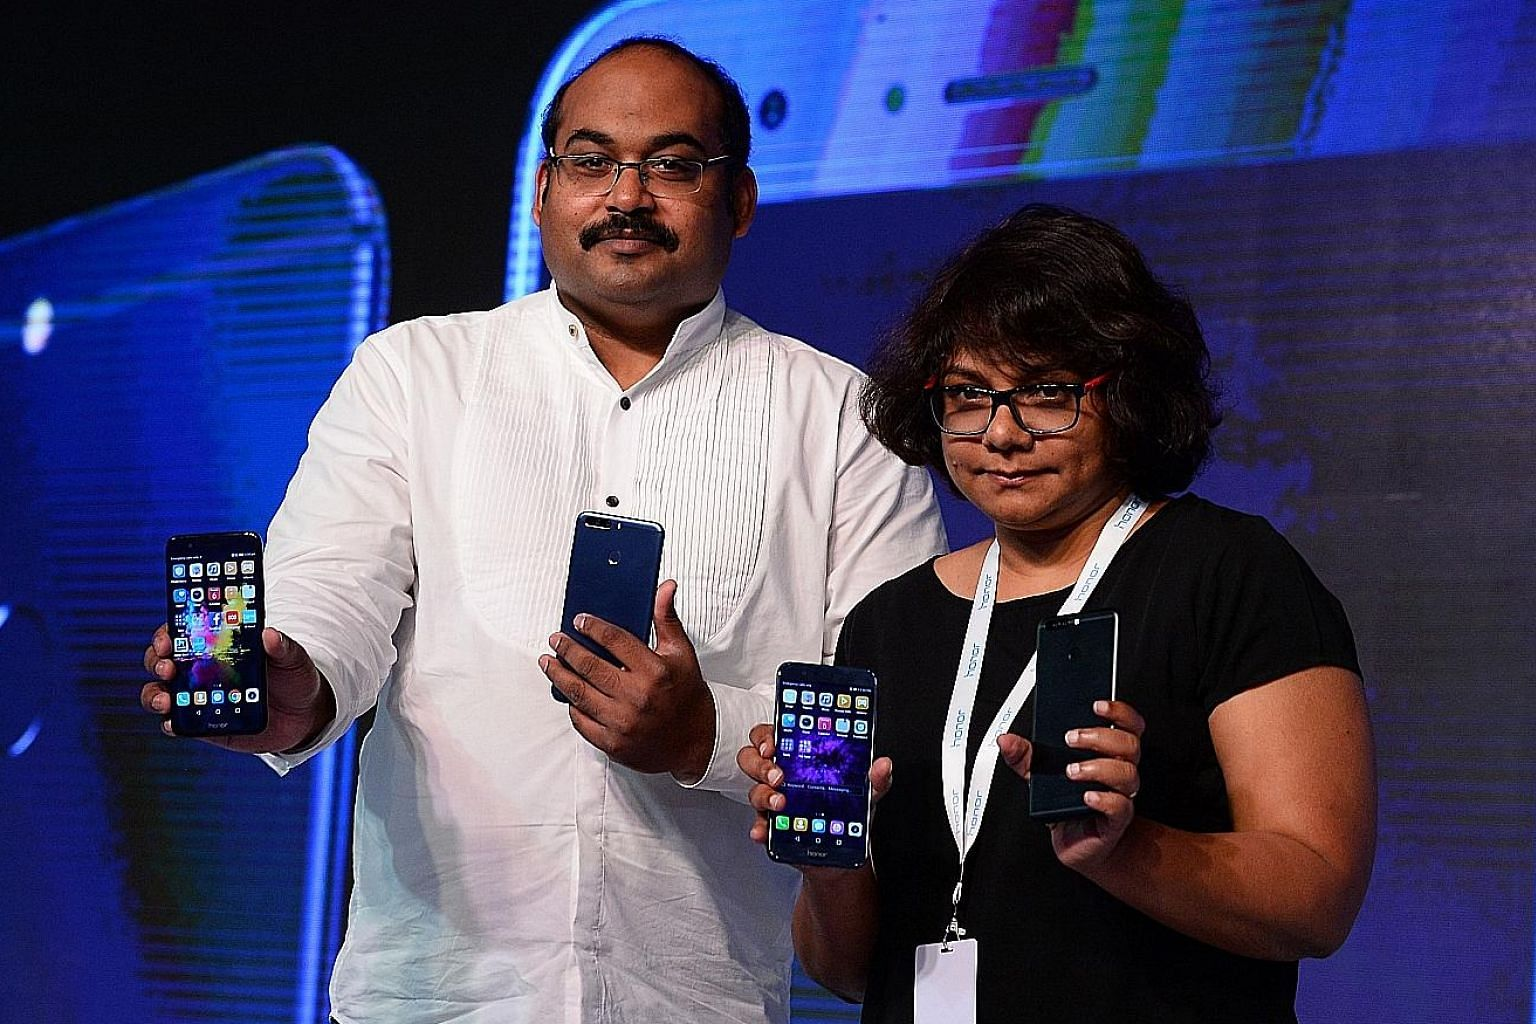 Mr P. Sanjeev, vice-president of sales for Huawei India's consumer group, and Ms Shalini Puchalapalli, director of category leadership at Amazon, with Huawei's new Honor 8 Pro smartphone in New Delhi.